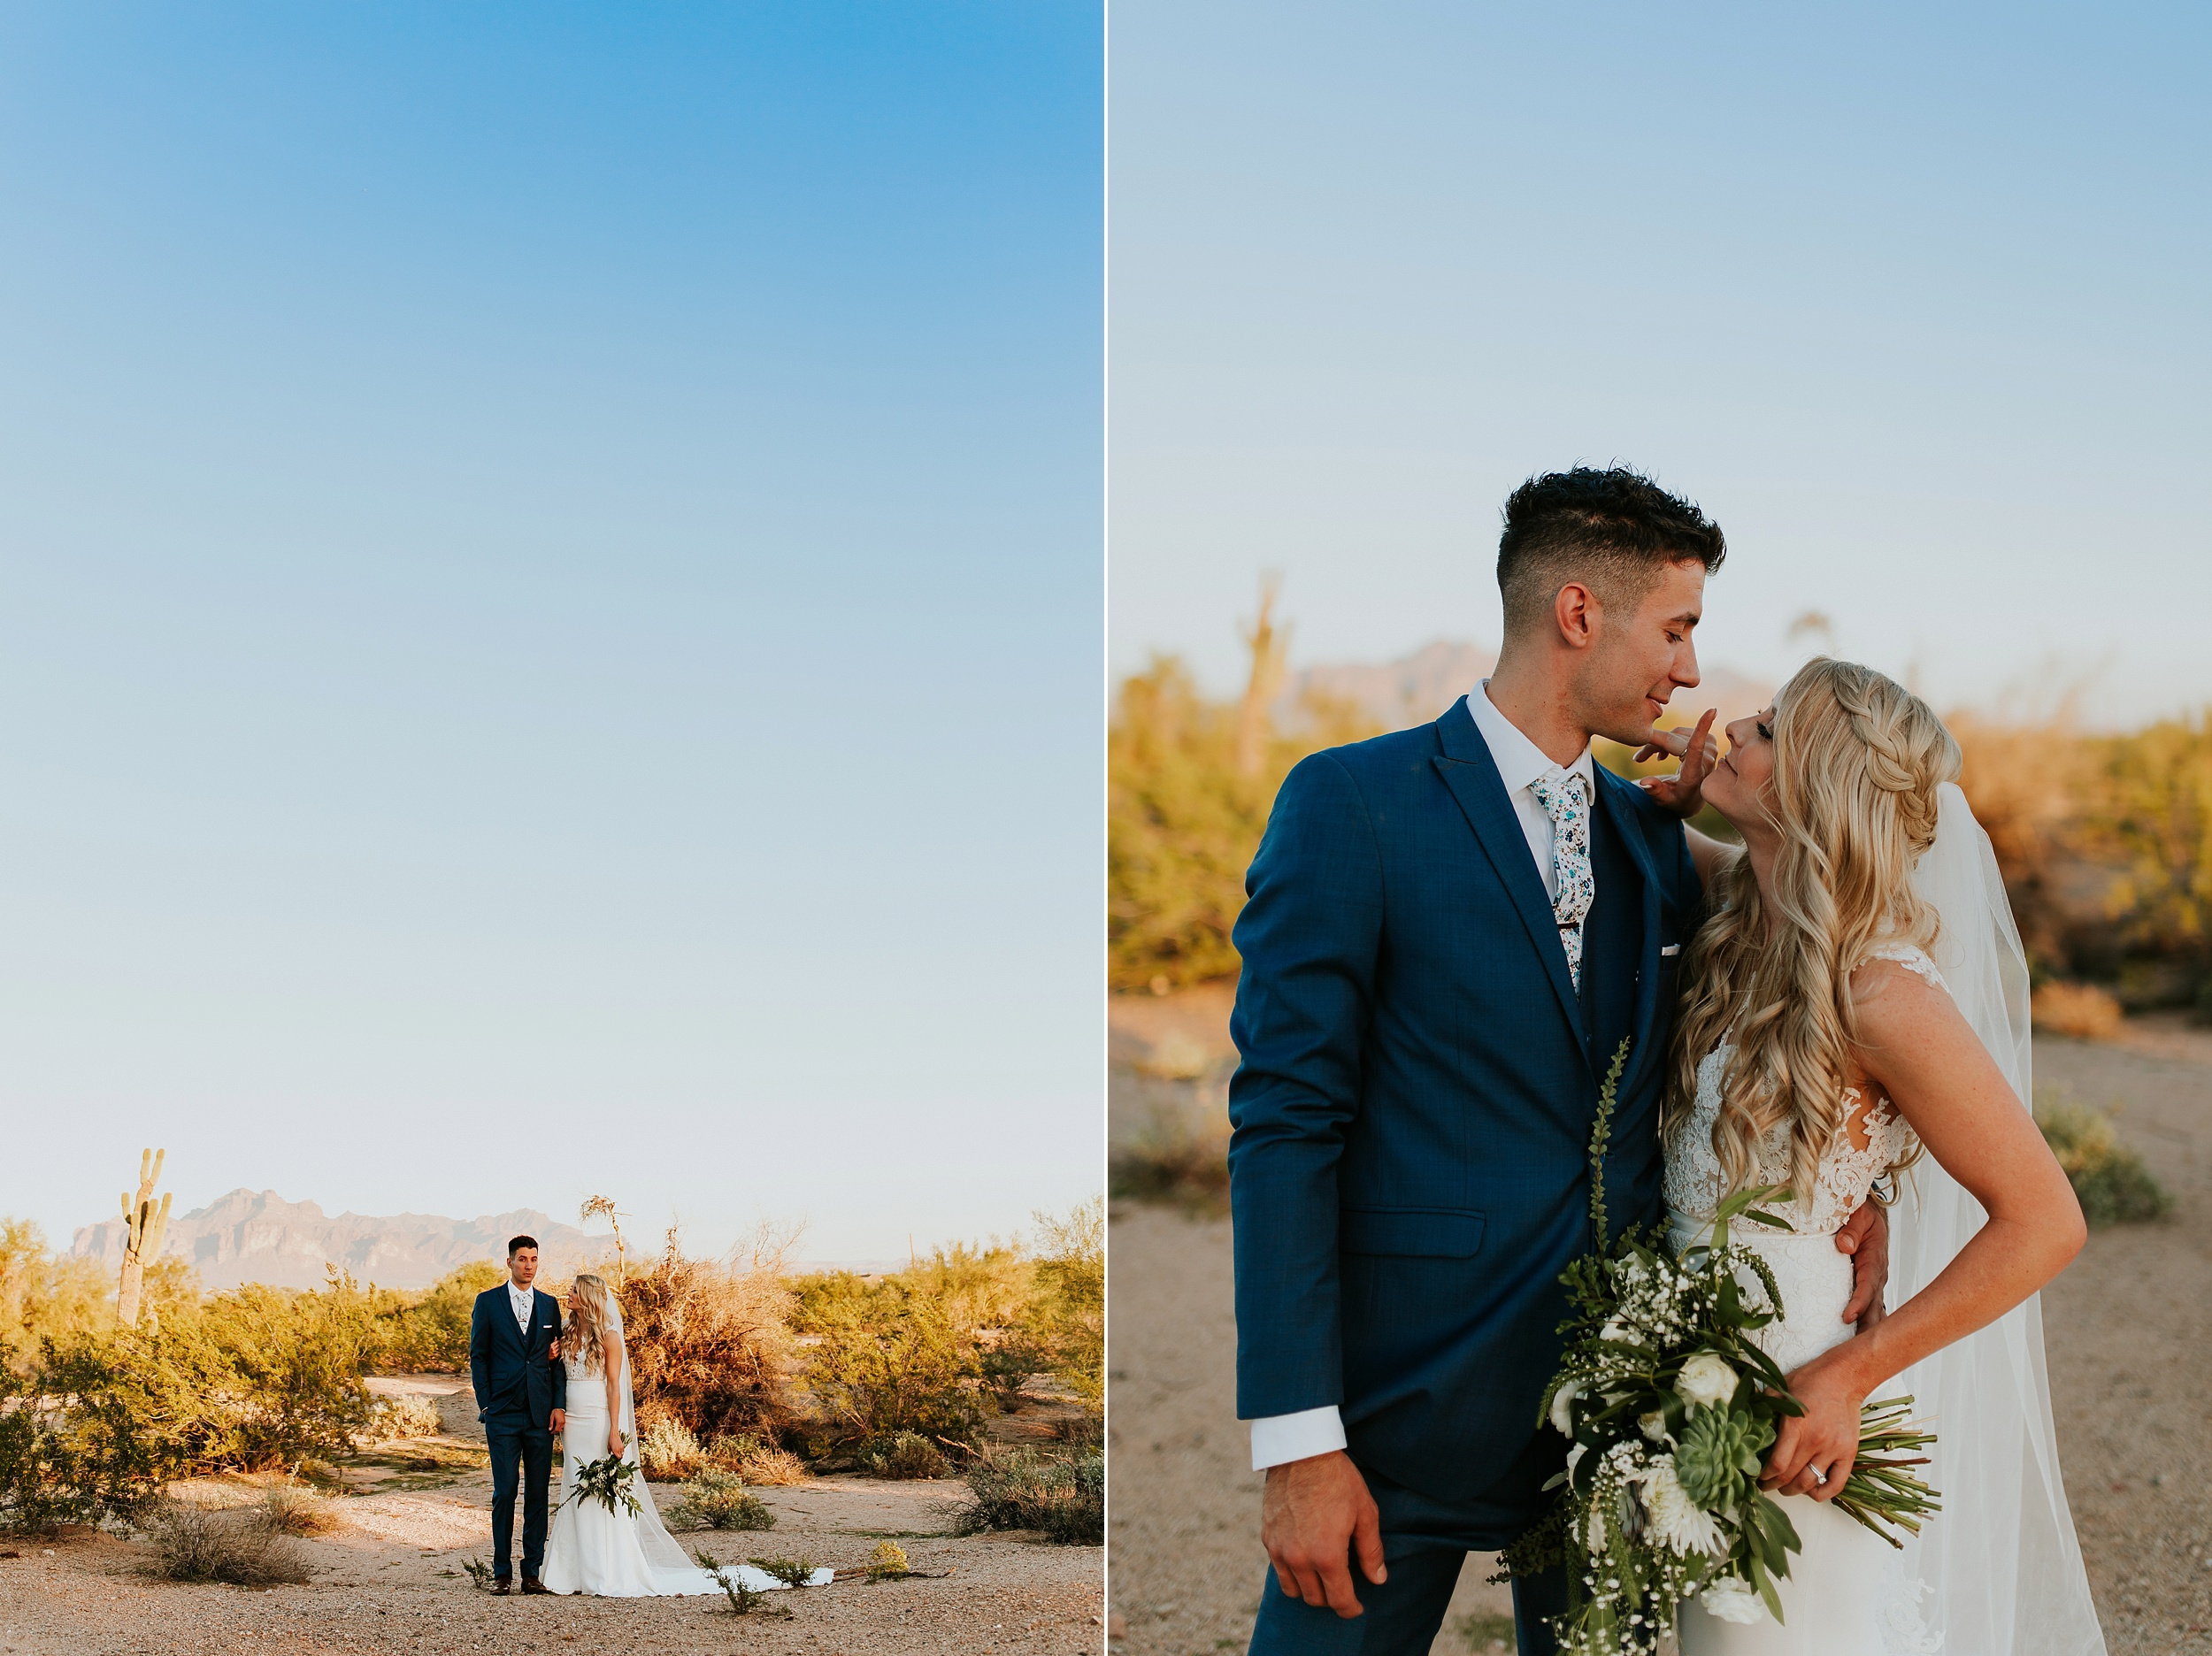 Meg+Bubba_Wedding_Bride+Groom_Portraits_Arizona-104.jpg